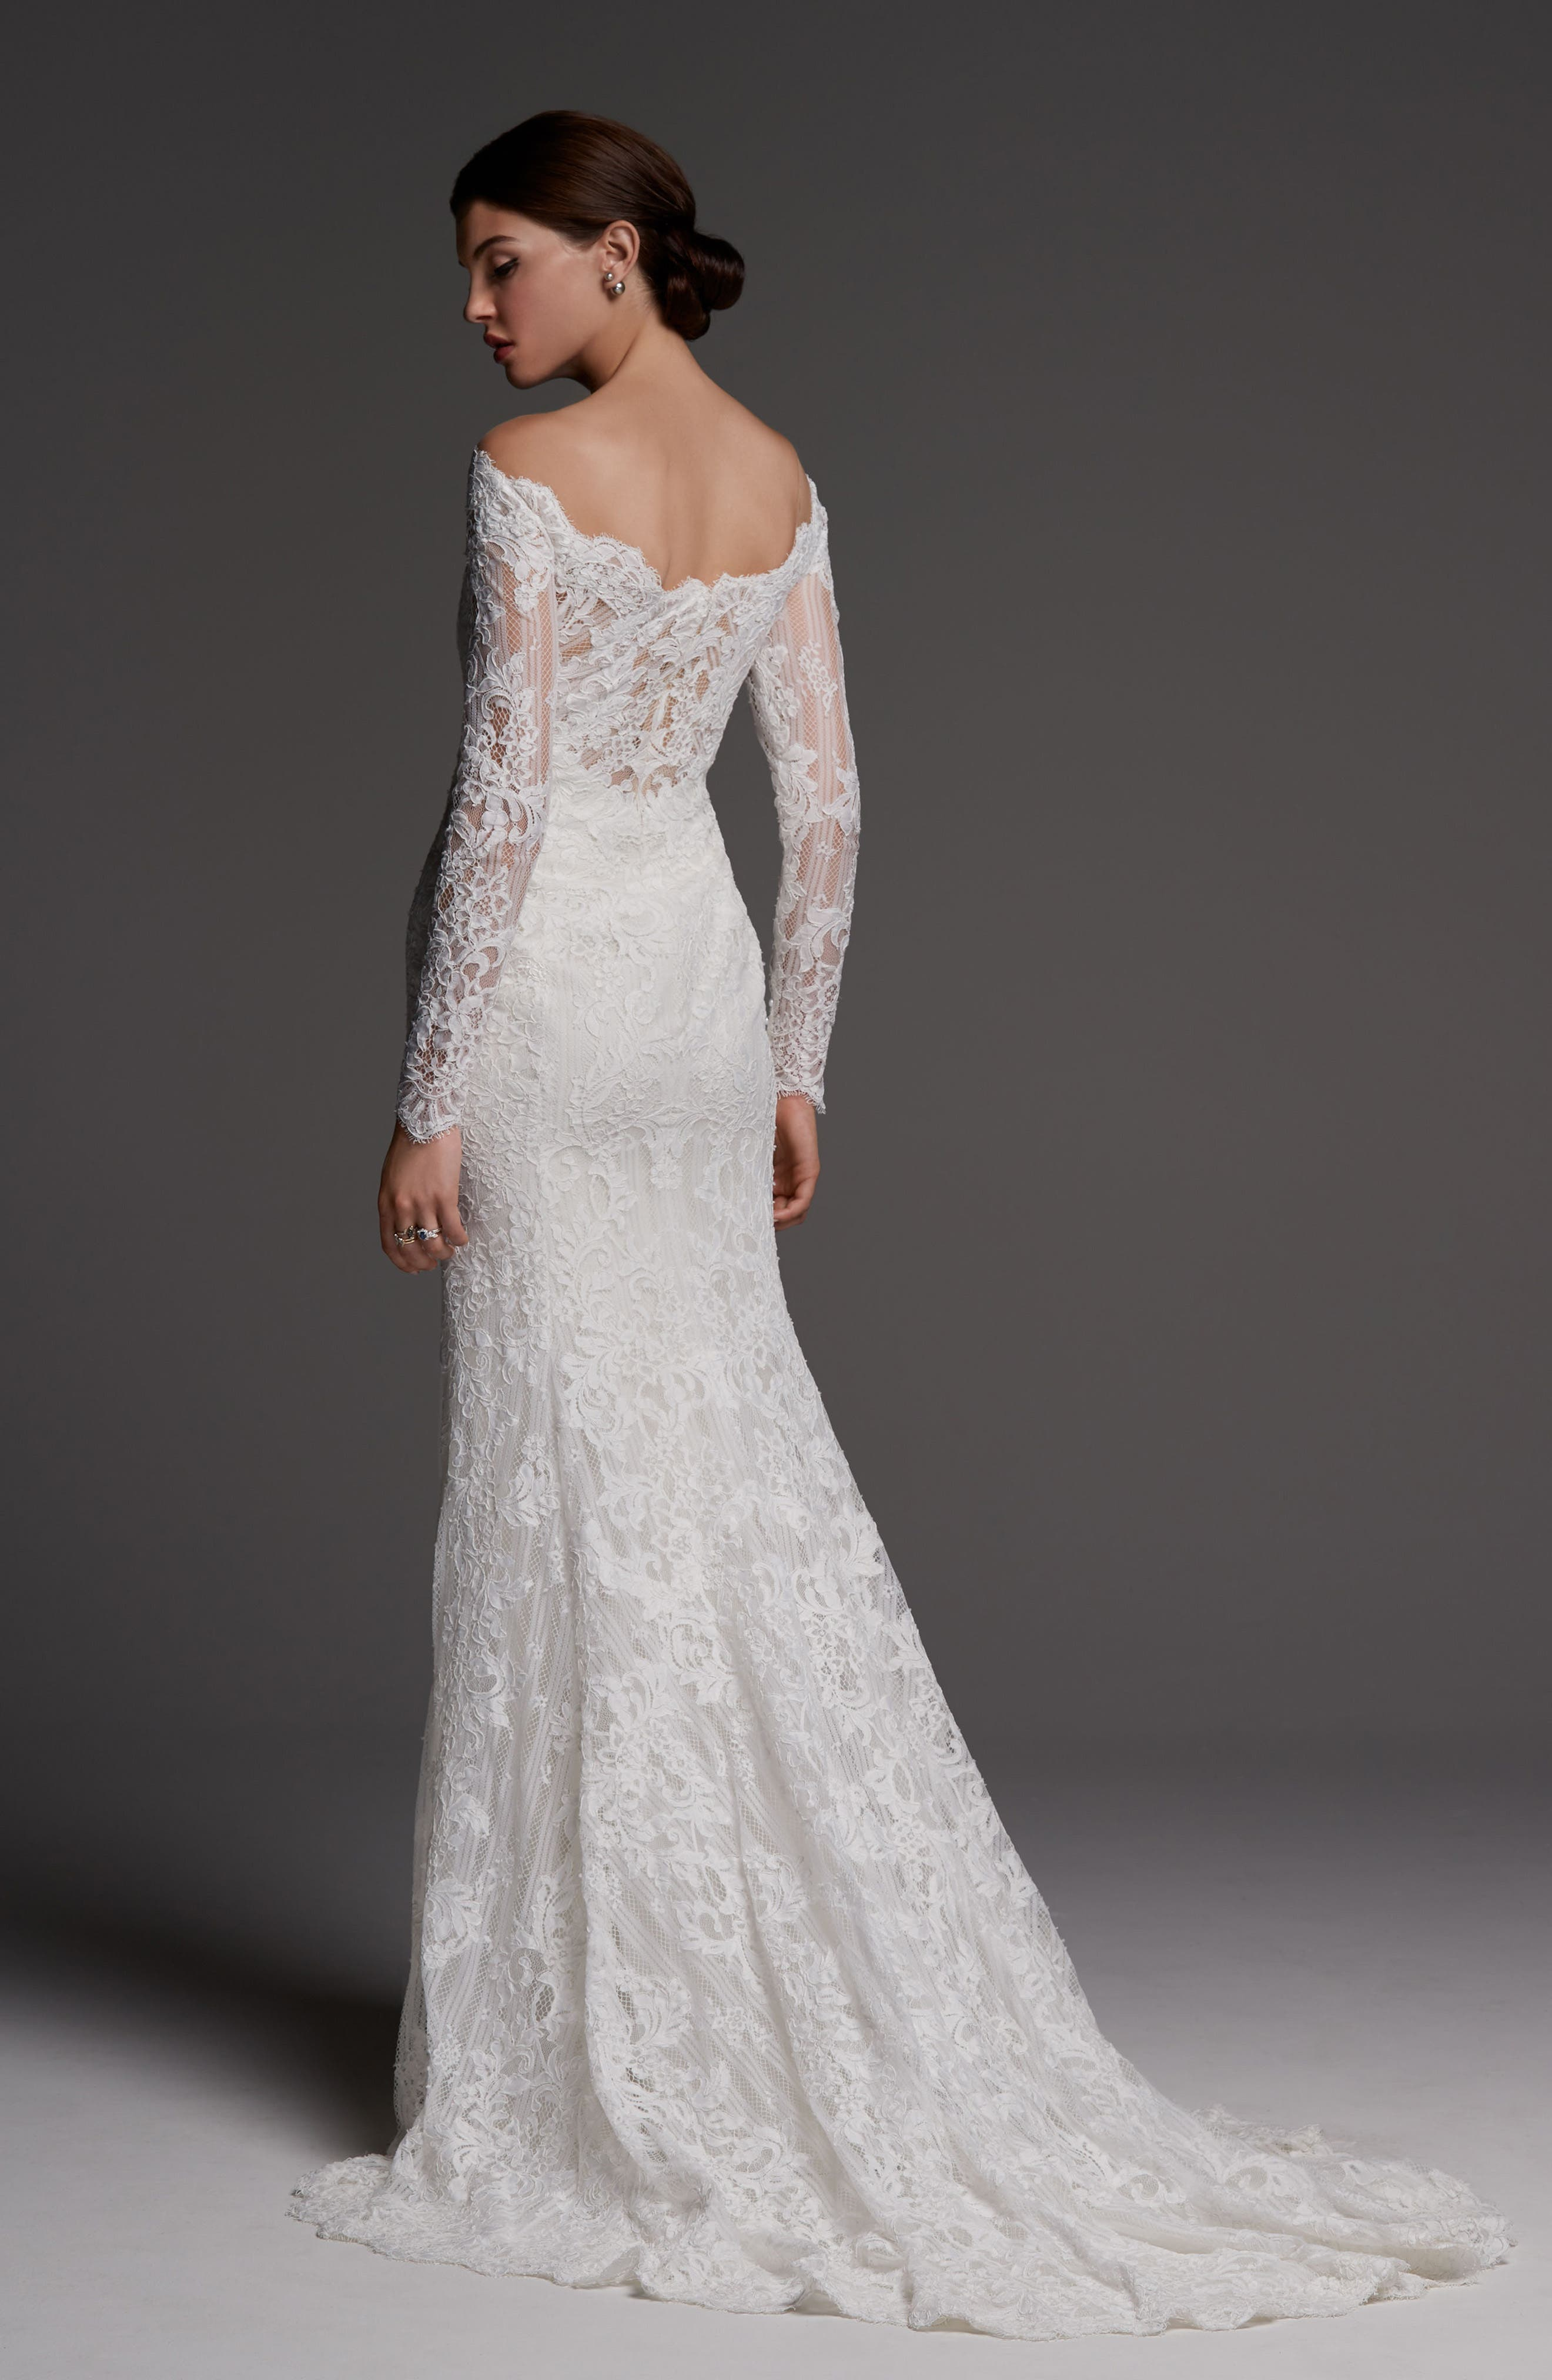 Visconti Long Sleeve Lace Gown,                             Alternate thumbnail 2, color,                             IVORY/ OYSTER